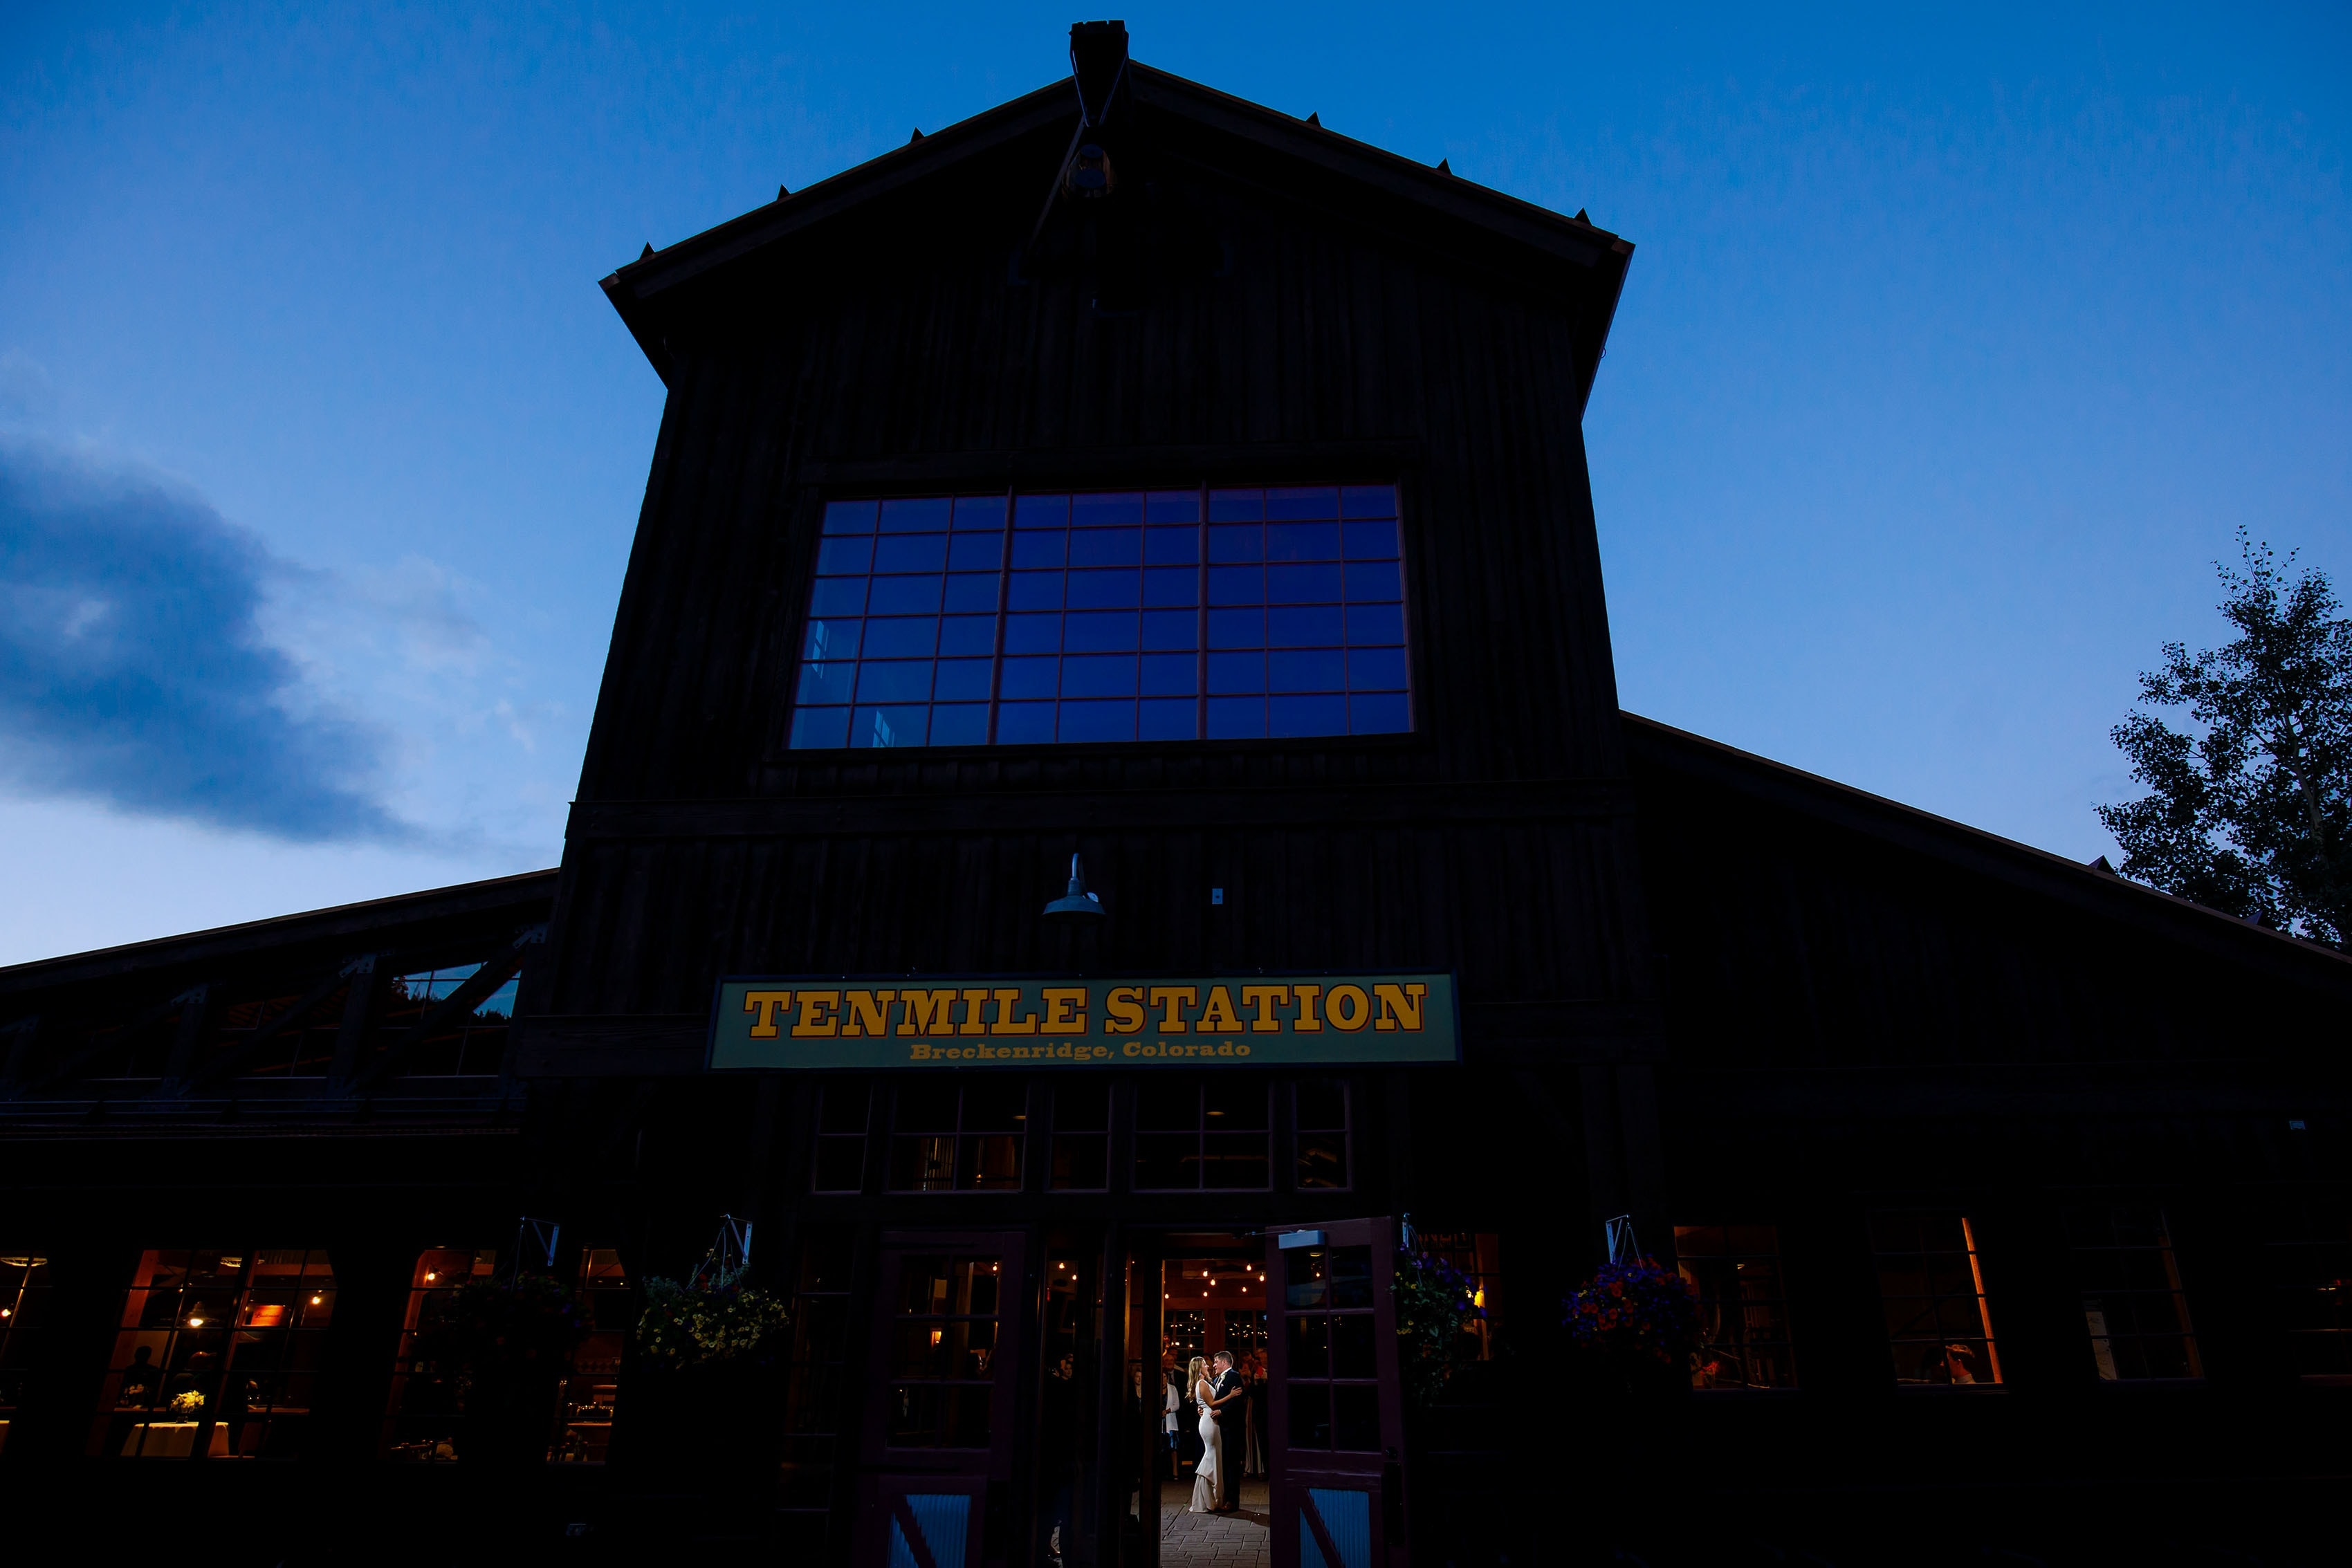 Tenmile Station at night